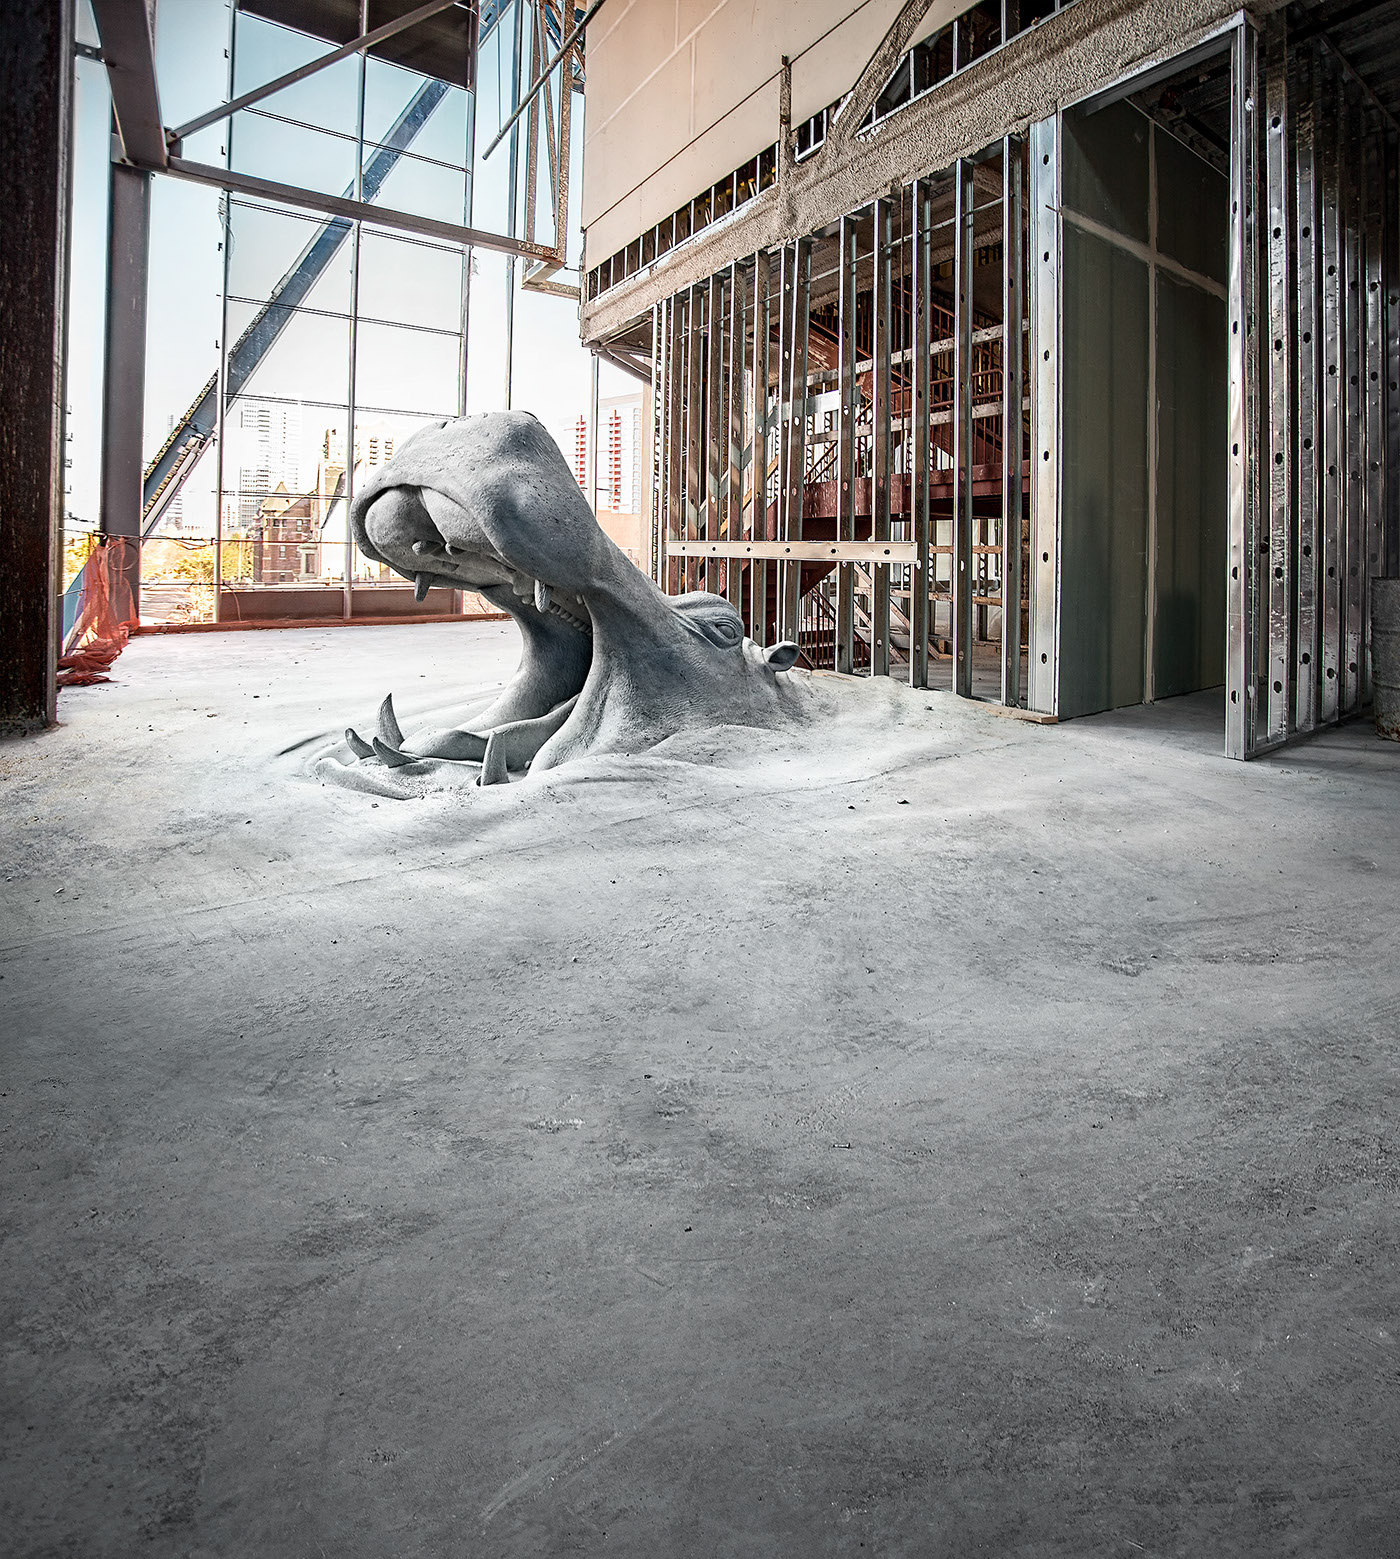 Incredible Graphic Design and Photo Manipulation Work of Filtre